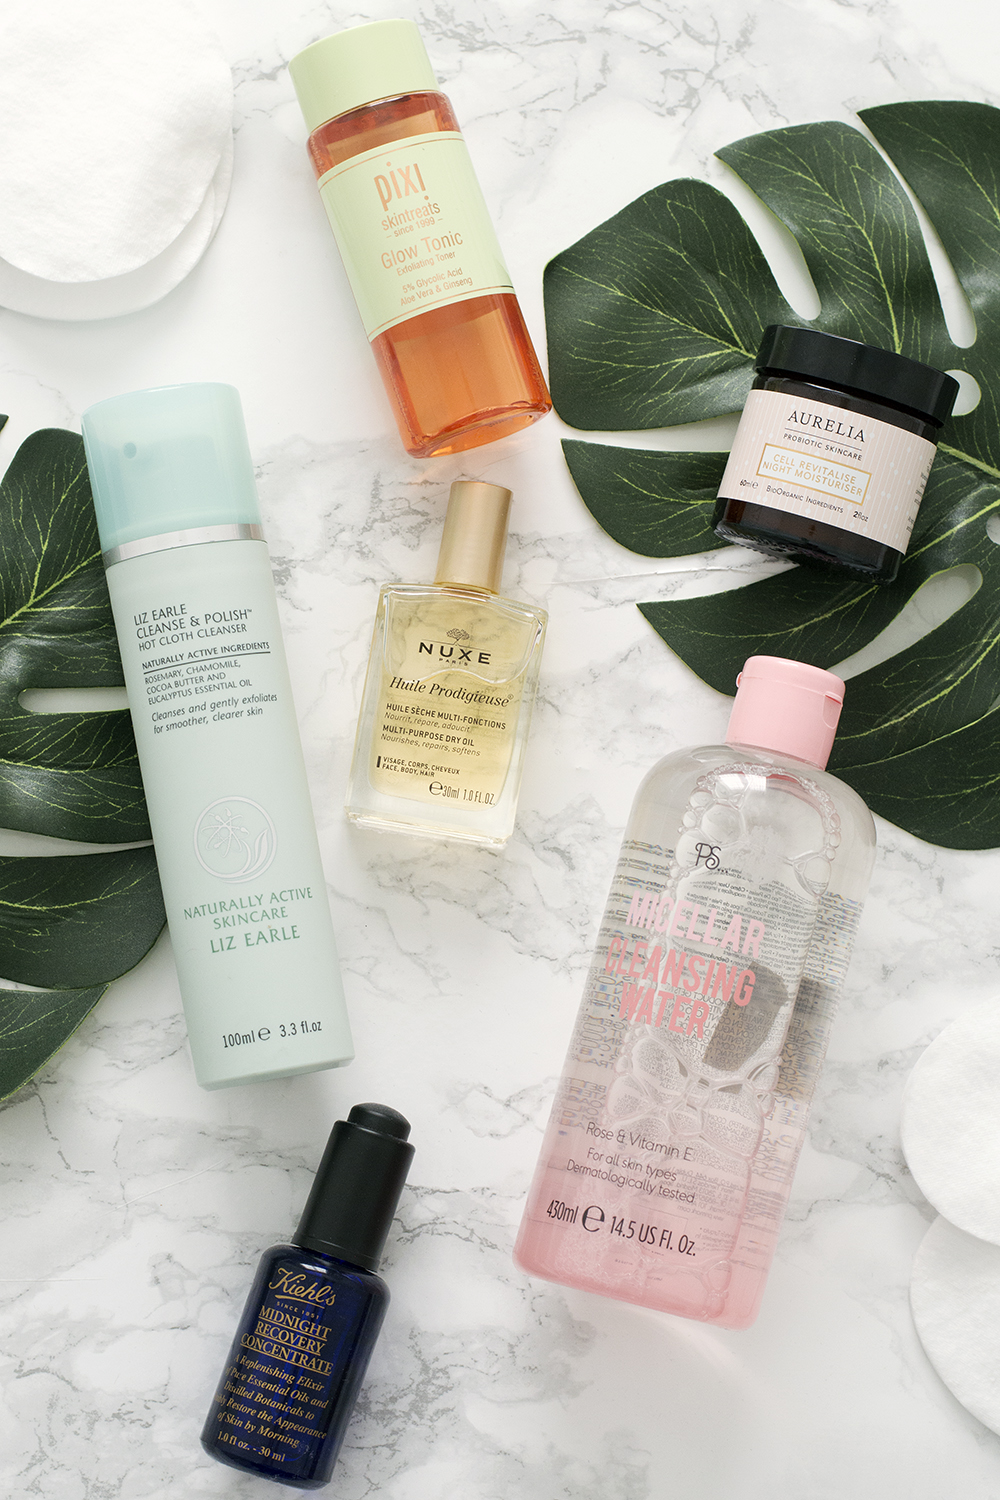 Liz Earle Cleanse and Polish. Primark Micellar cleansing water. Pixi Glow Tonic. Nuxe multi-purpose dry oil. Midnight Recovery Concentrate. Aurelia Cell Revitalise Nigh Moisturiser.